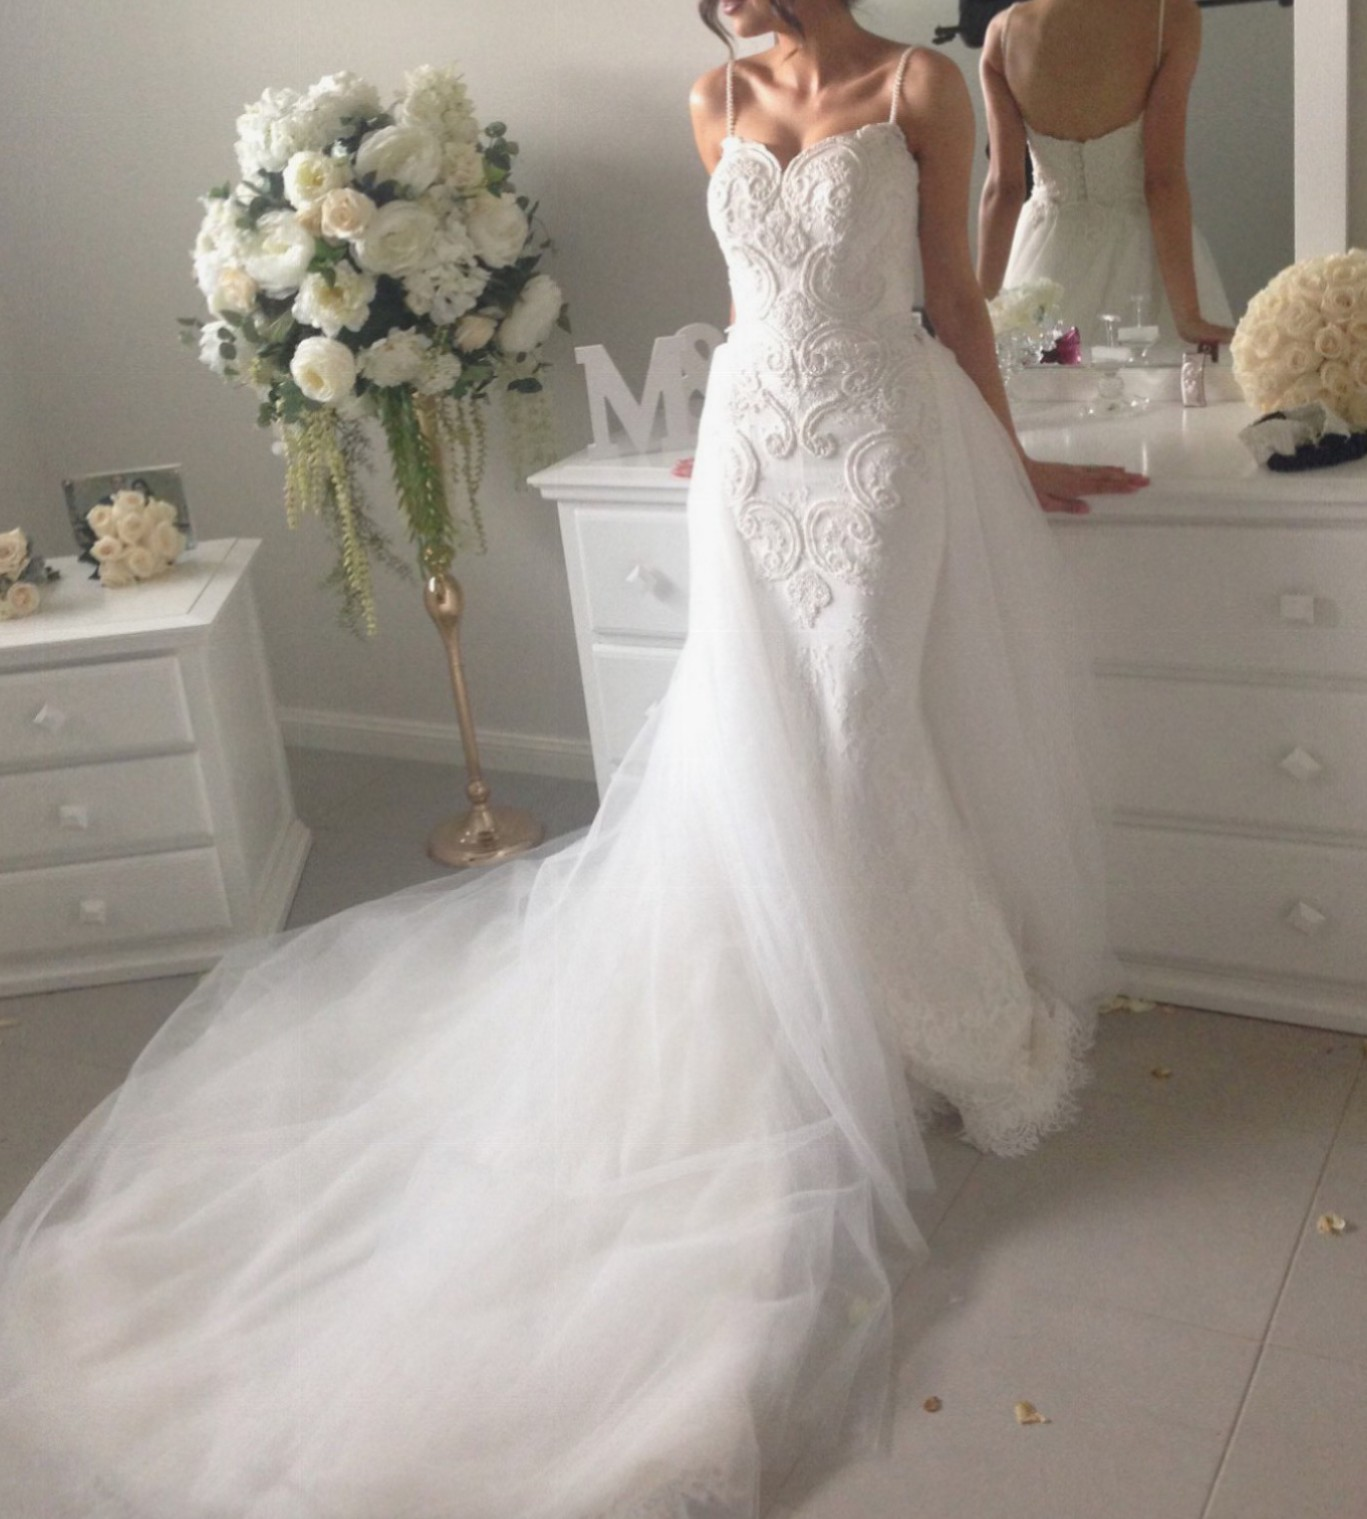 Second Hand Wedding Dresses: Suzanna Blazevic Second Hand Wedding Dress On Sale 41% Off